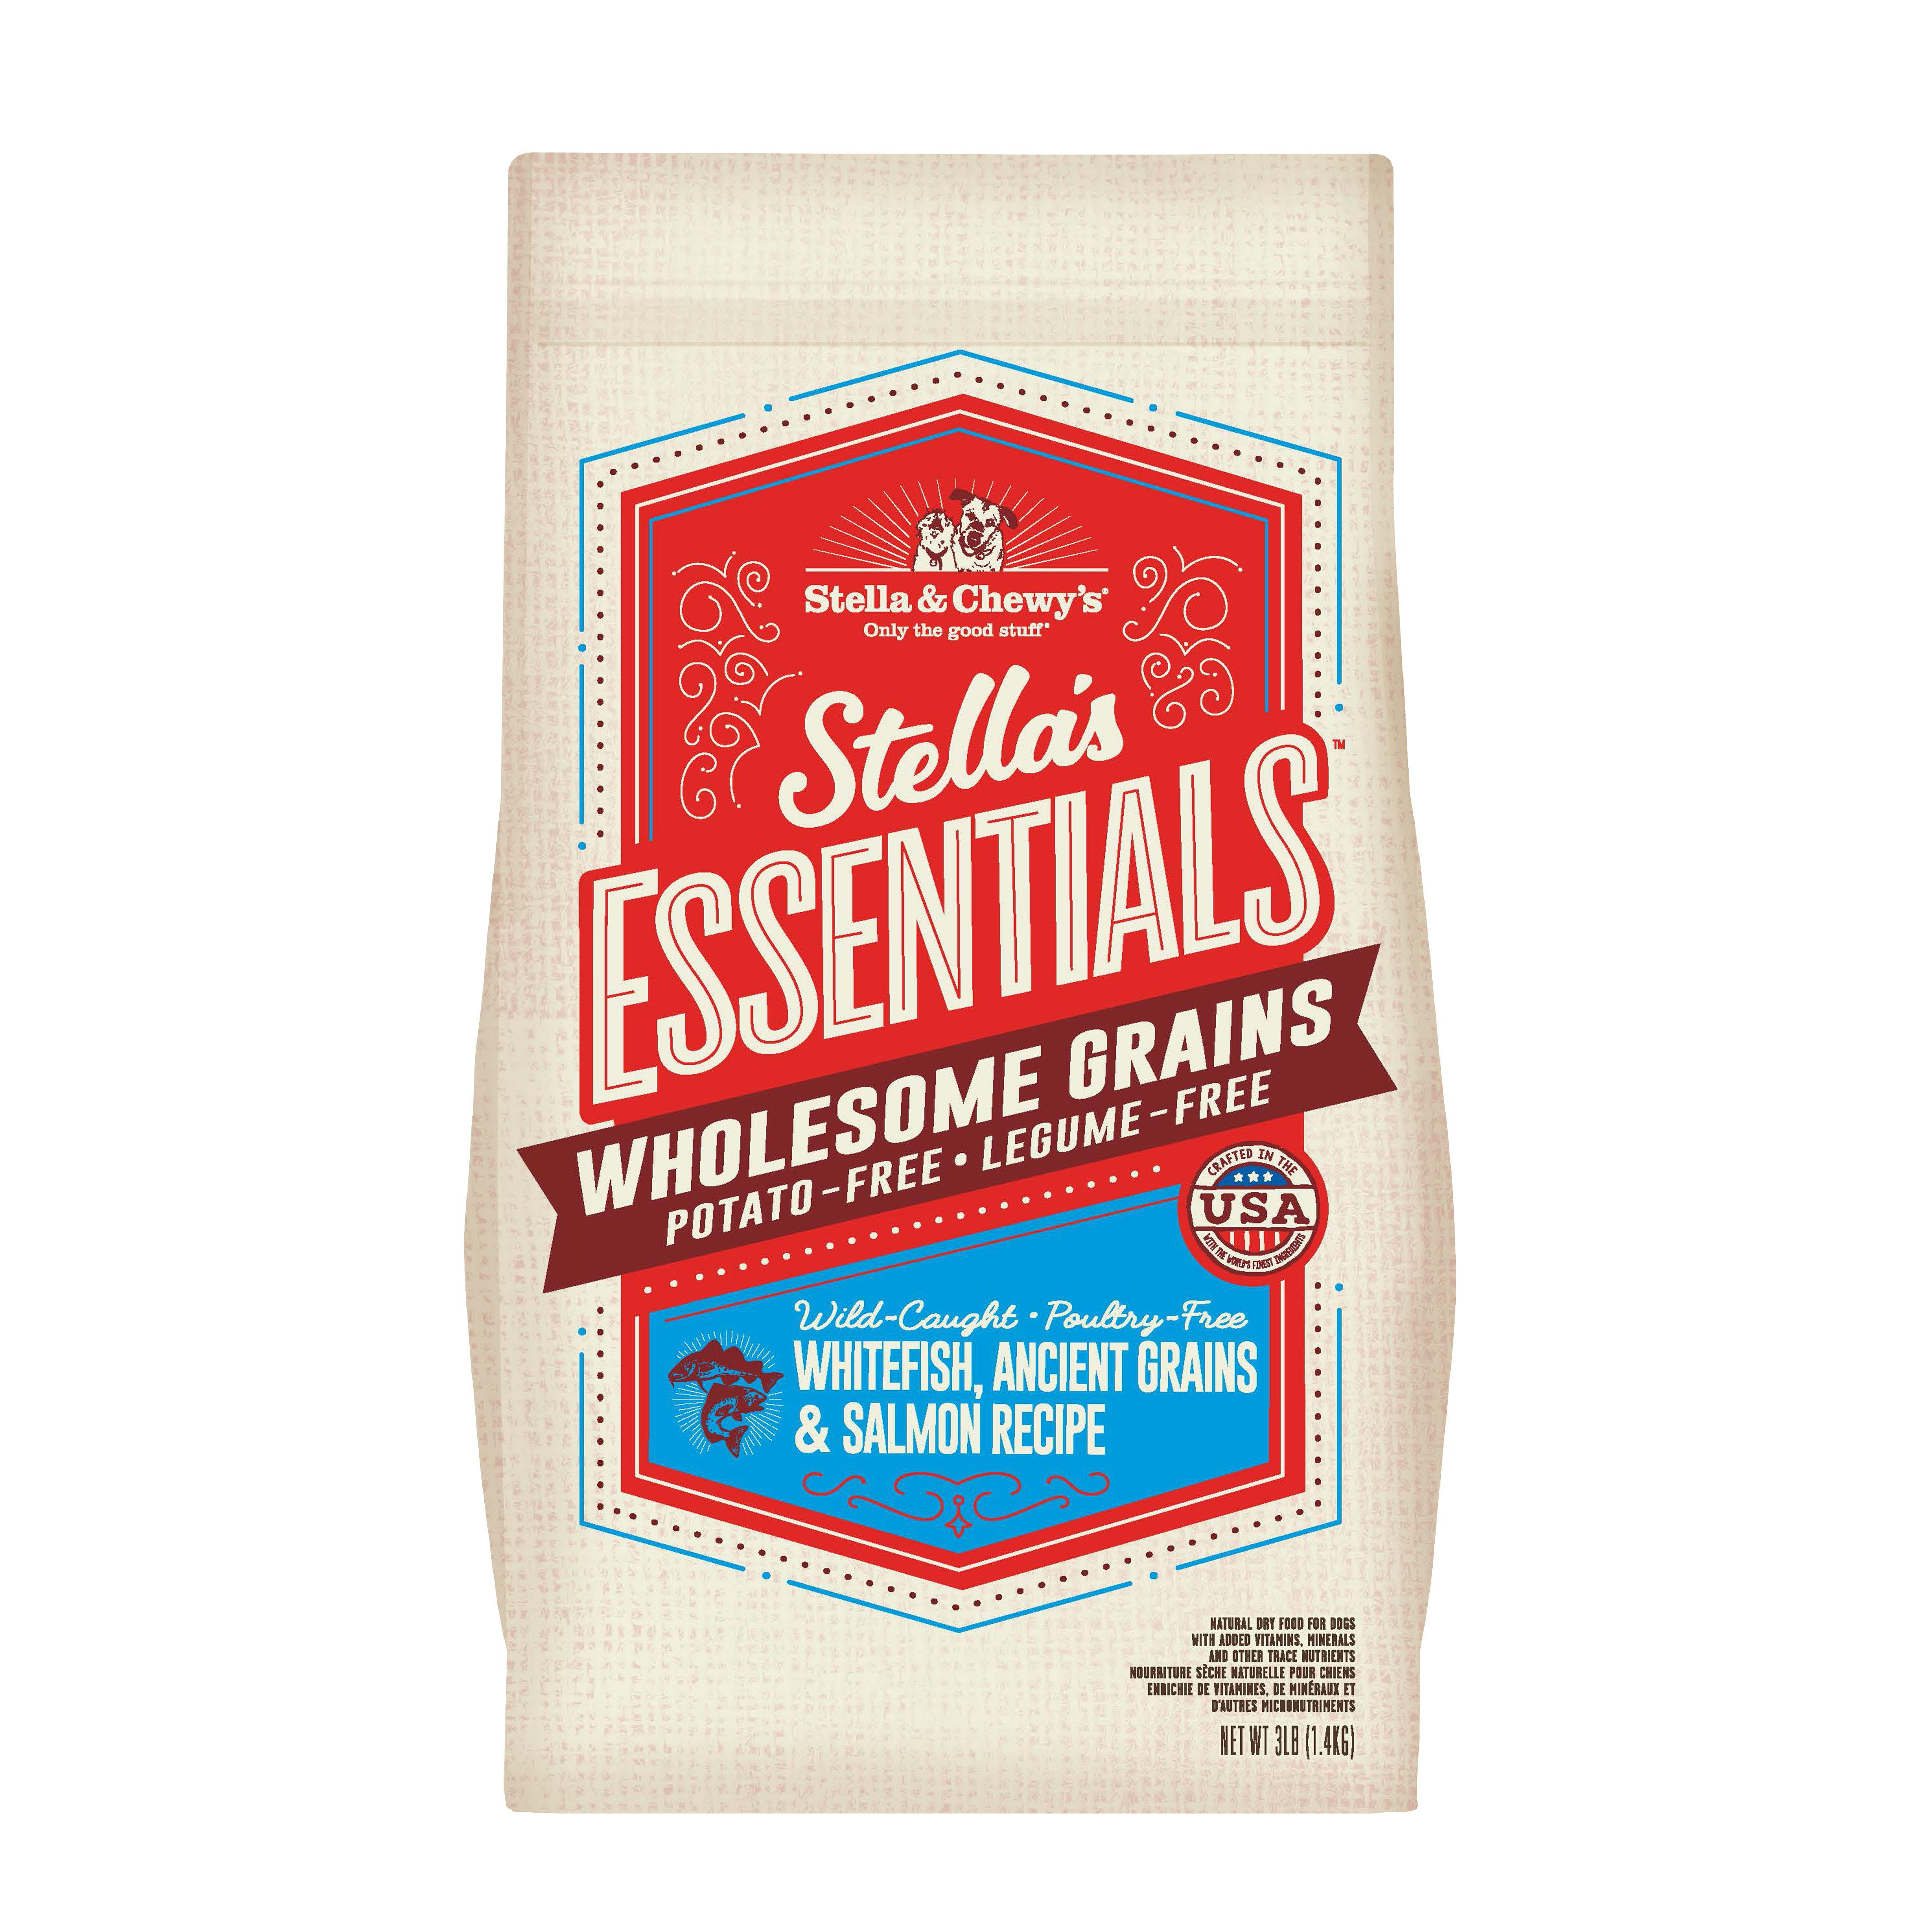 Stella & Chewy's Essentials Wholesome Grains Whitefish, Salmon & Ancient Grains Dry Dog Food Image